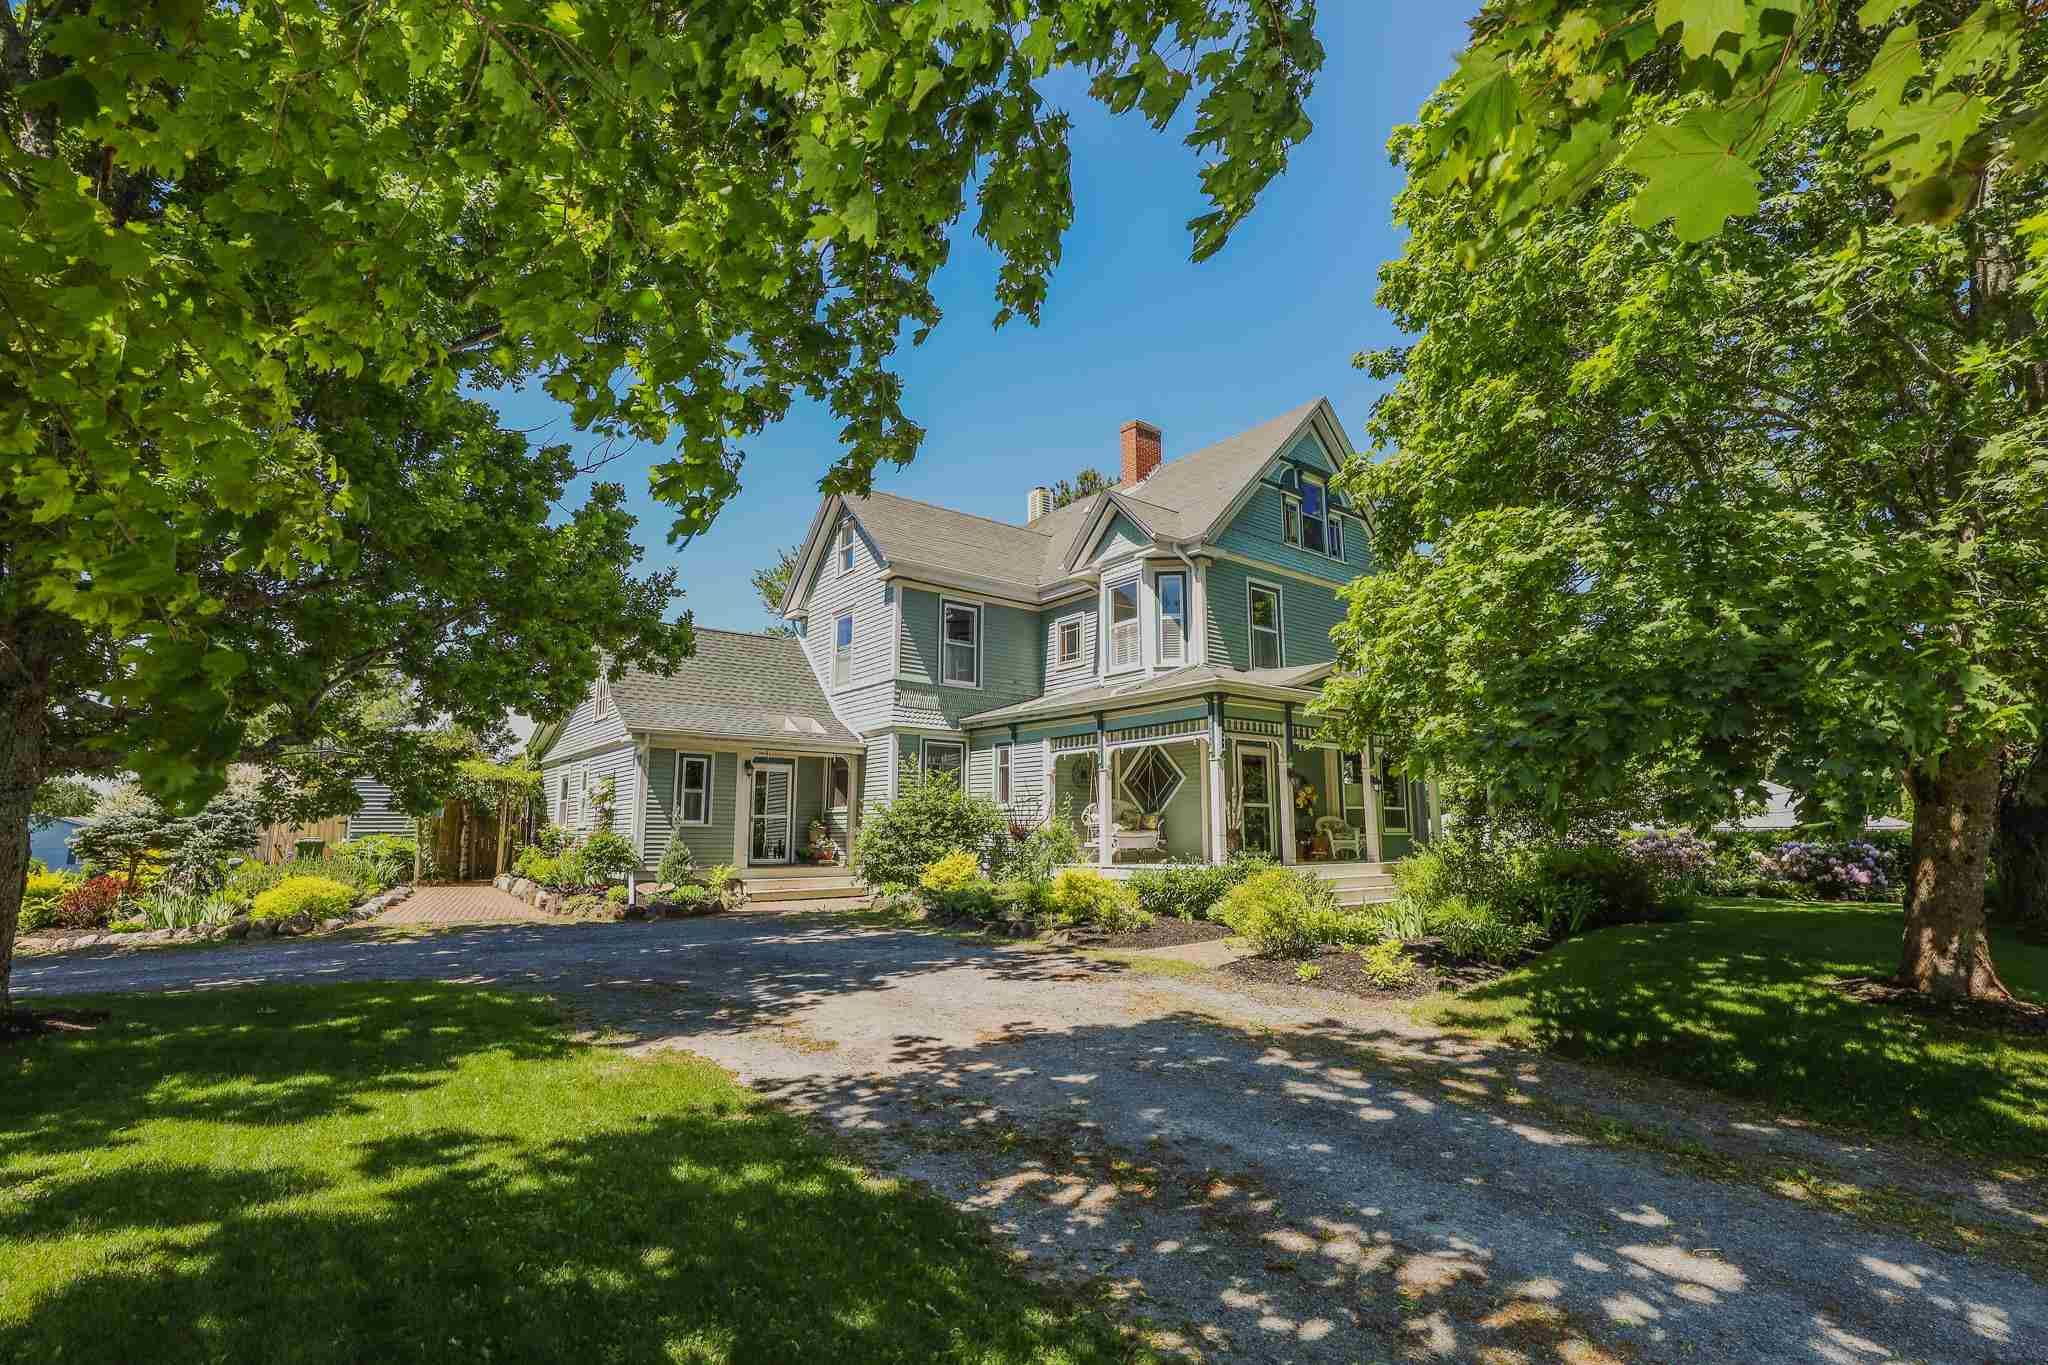 Main Photo: 850 Clifton Avenue in Windsor: 403-Hants County Residential for sale (Annapolis Valley)  : MLS®# 202115587